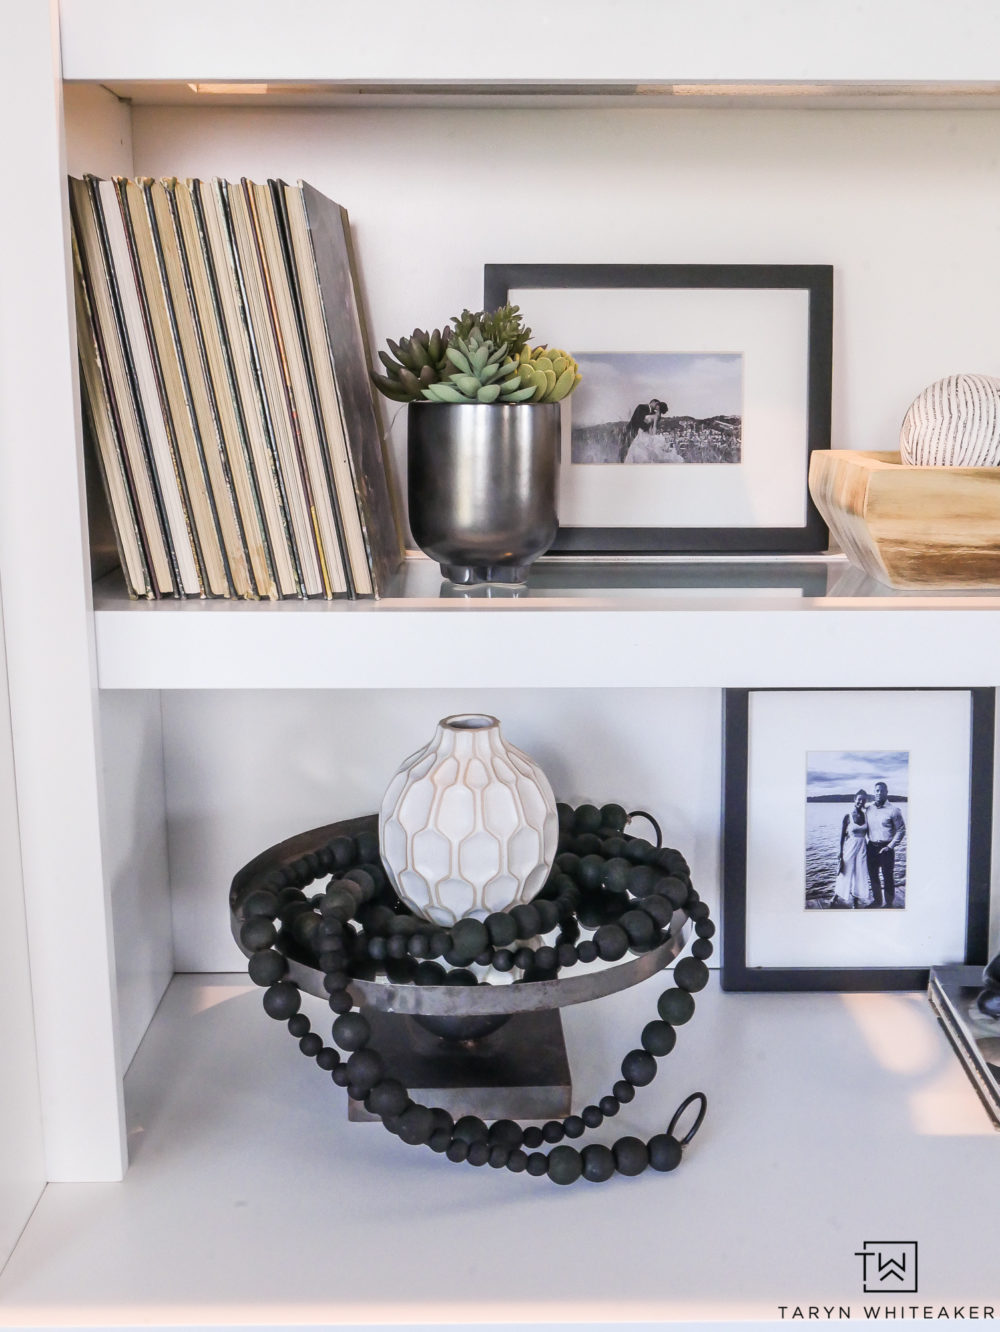 Black and white decor on open shelves.